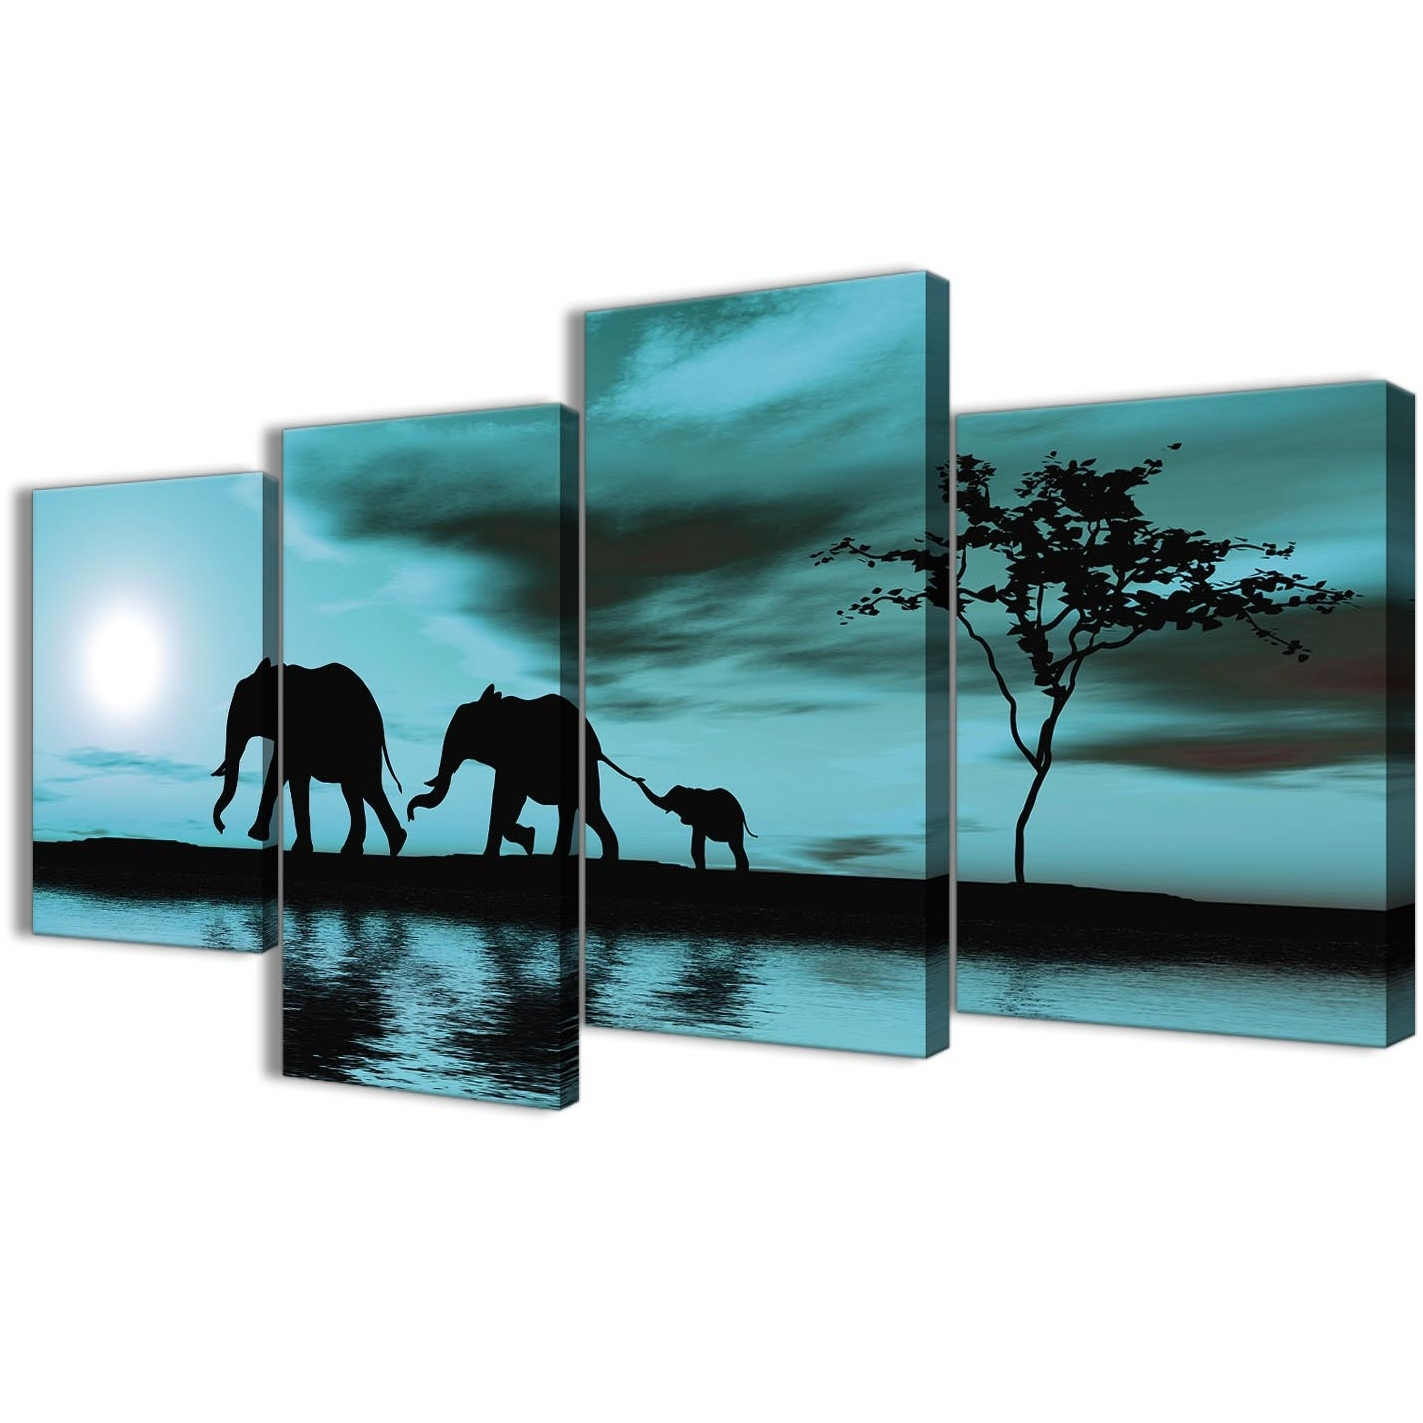 Large Teal African Sunset Elephants Canvas Wall Art Print – Multi 4 Regarding Widely Used Oversized Teal Canvas Wall Art (View 5 of 15)